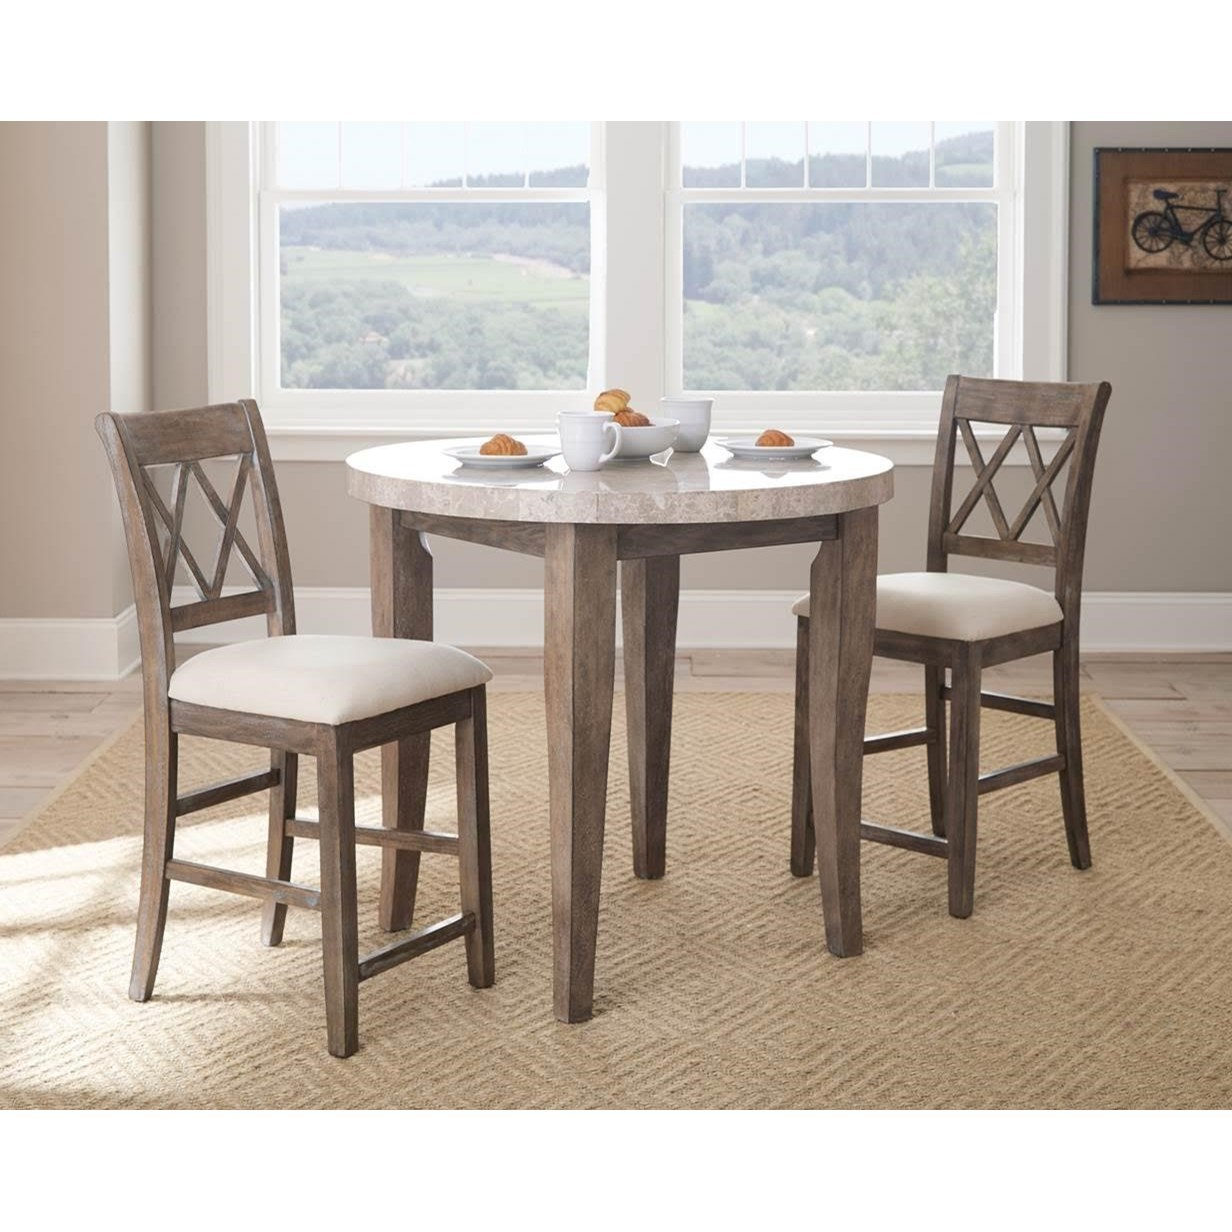 Steve Silver Franco 3 Piece Marble Counter Height Dining